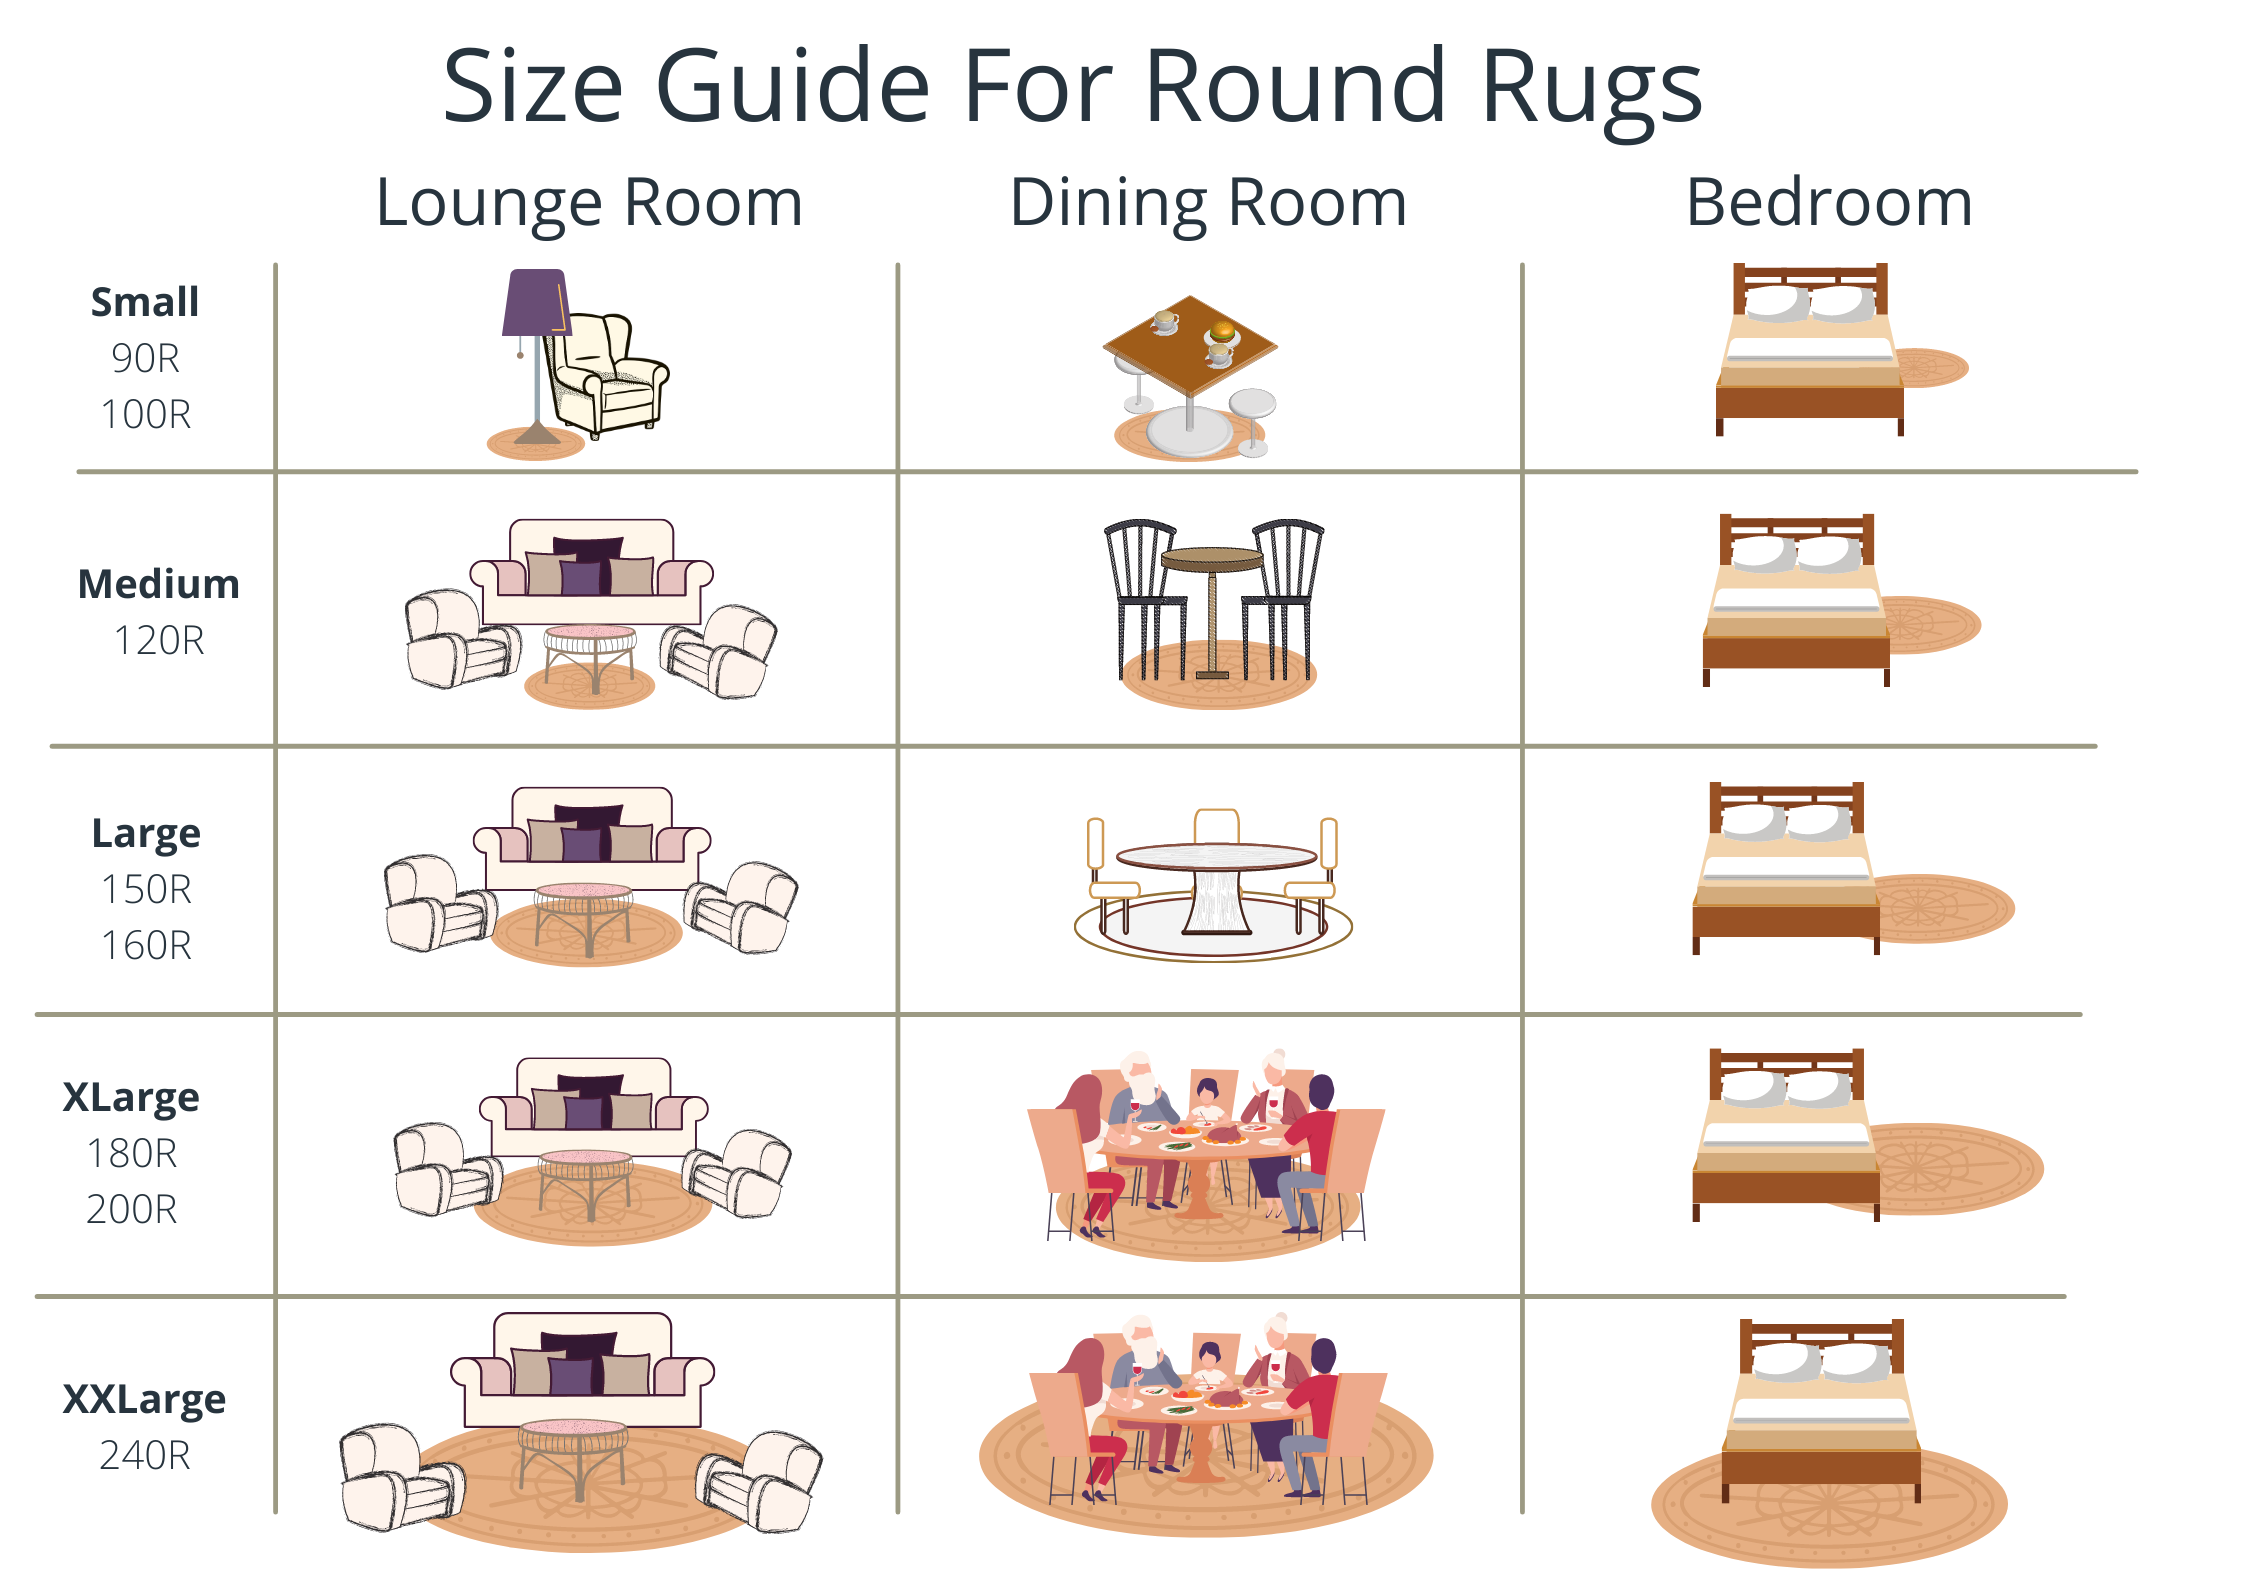 Size Guide For Round Rugs